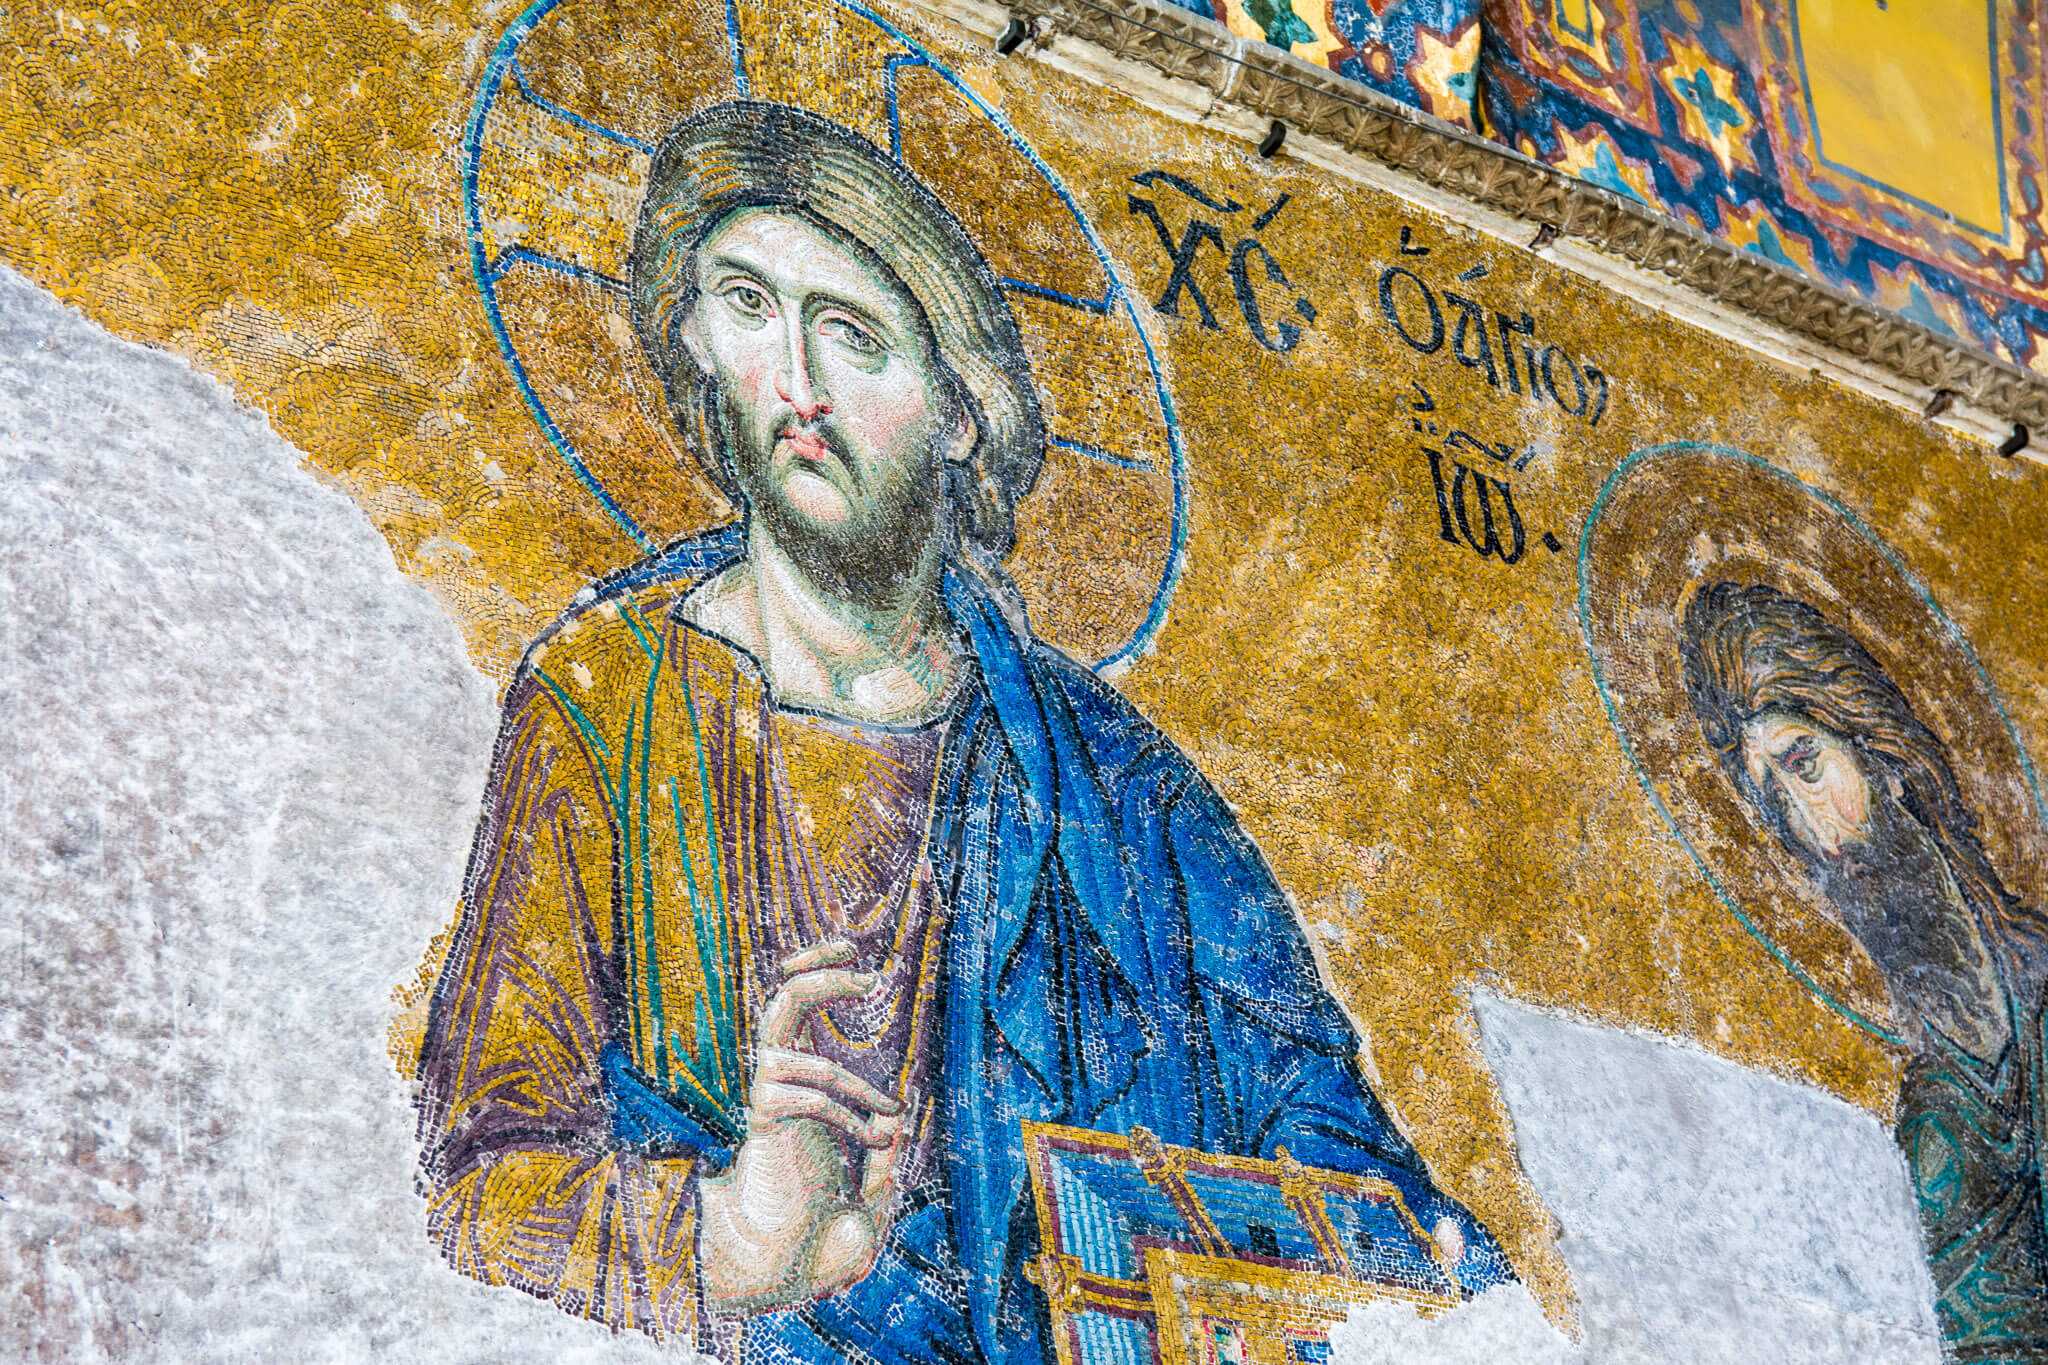 The Byzantine Mosaics at Hagia Sophia